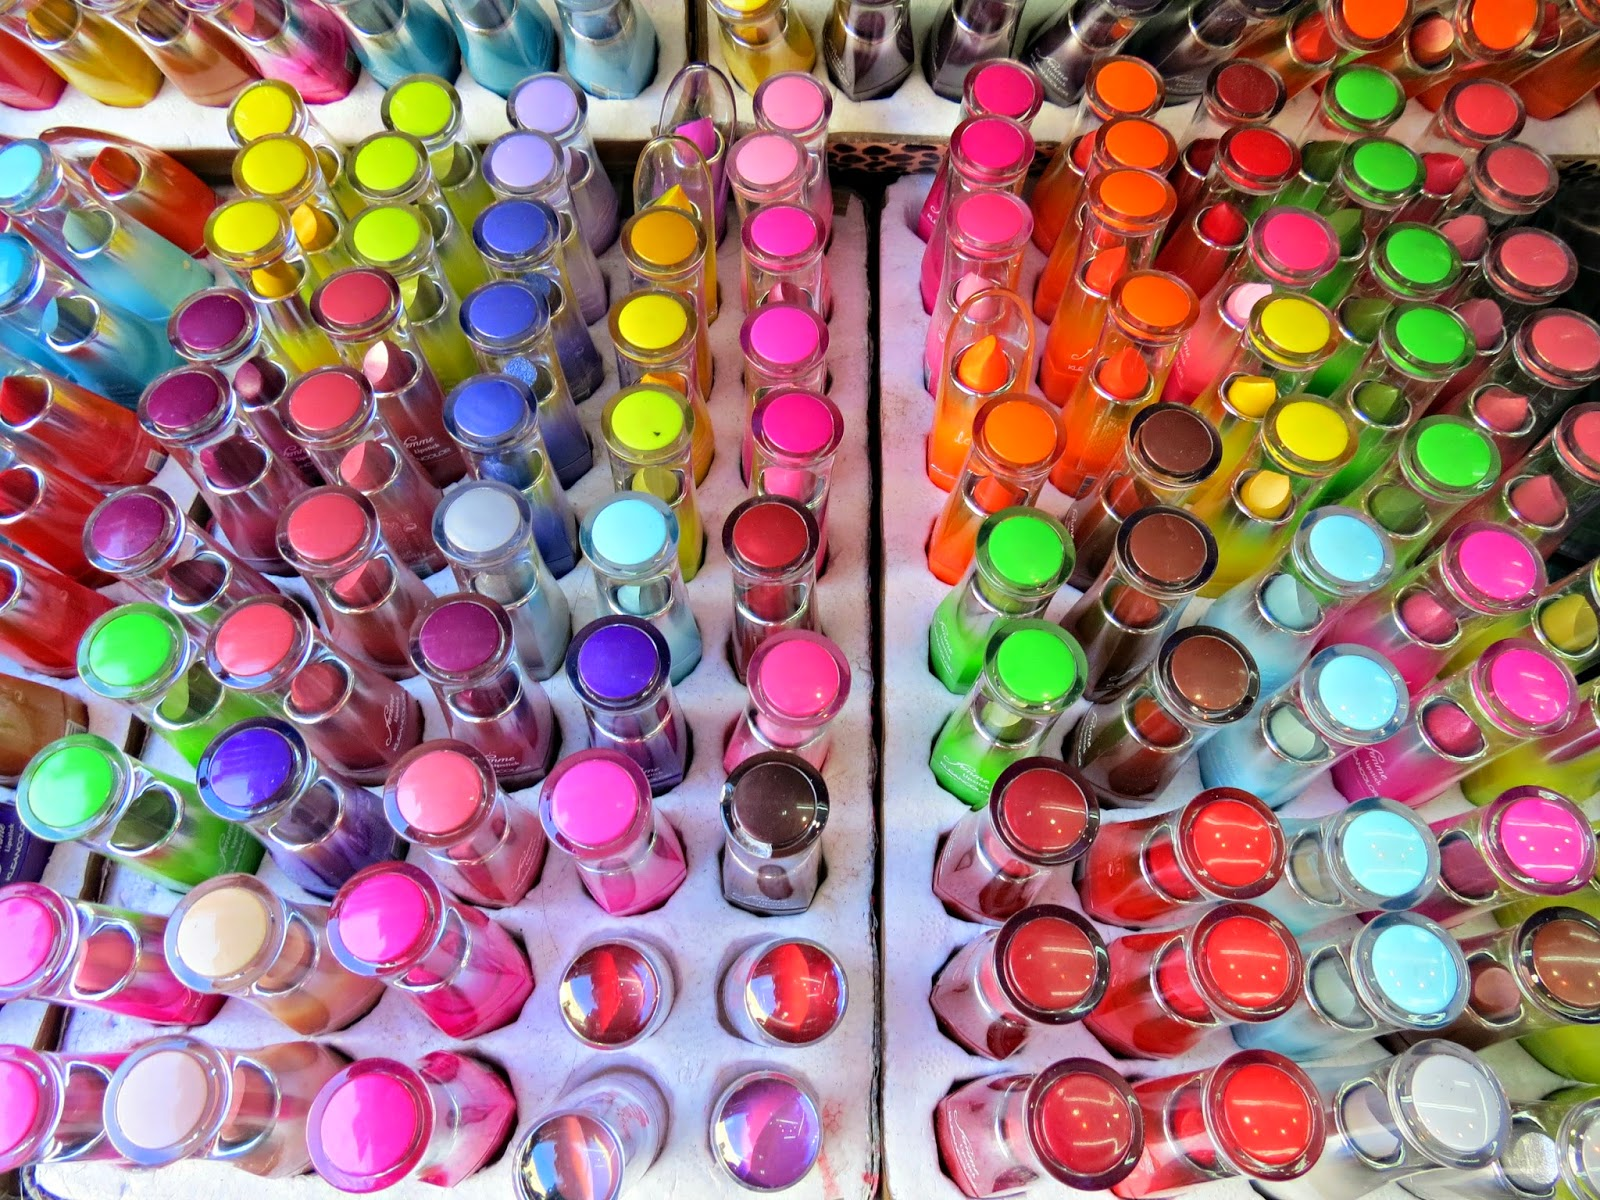 The Santee Alley: Makeup and Beauty Supplies at Wholesale